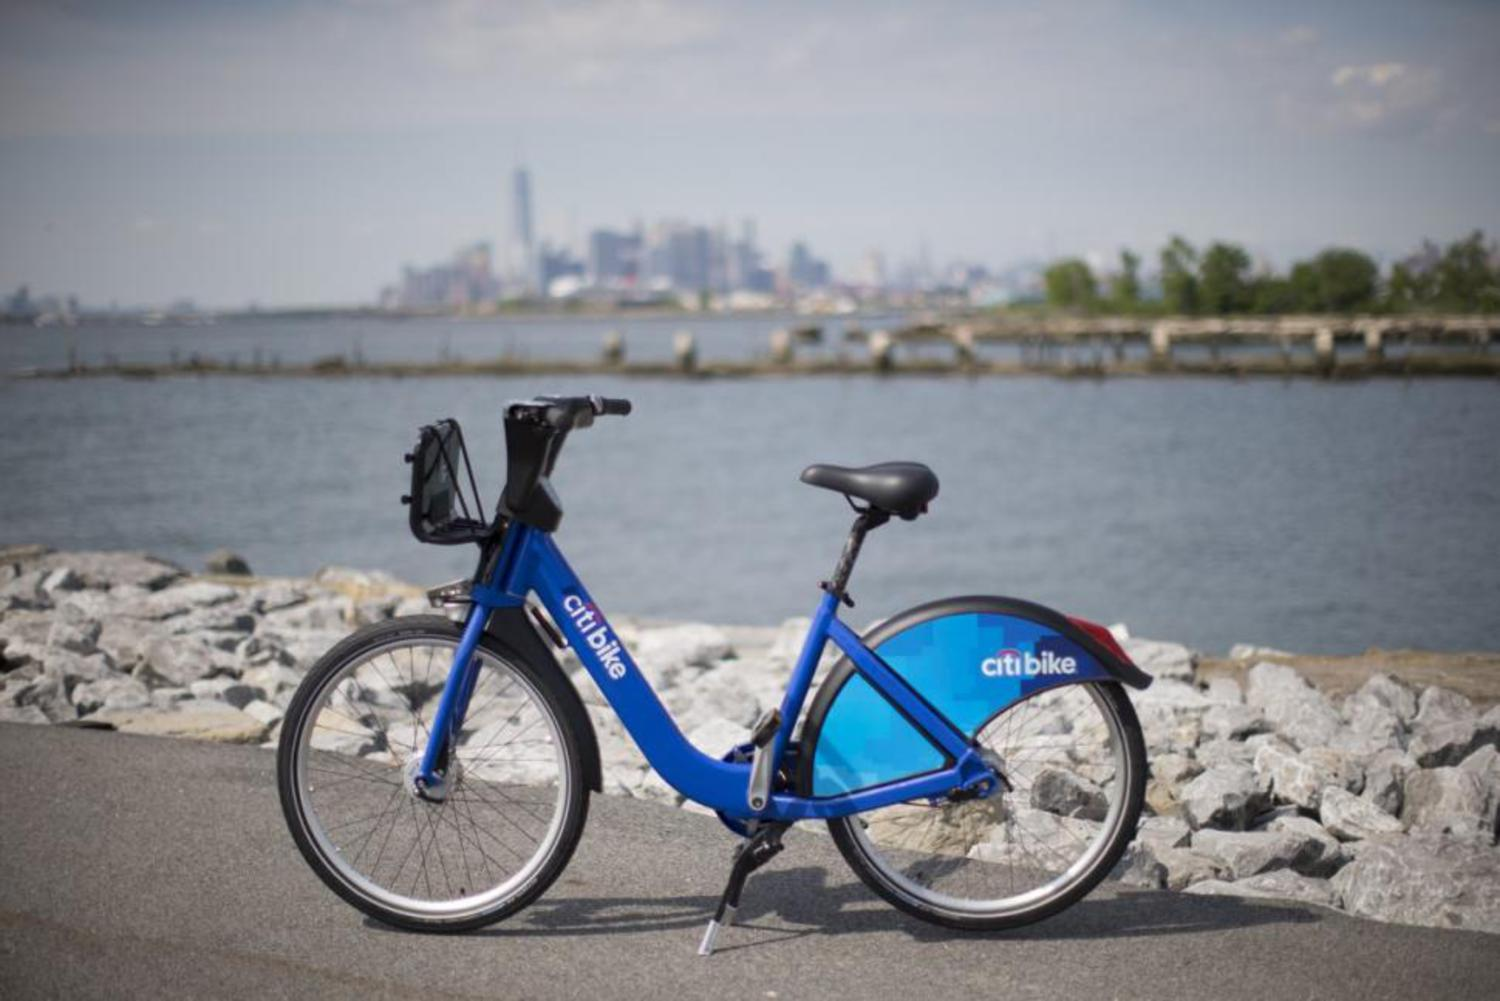 One thousand of the new bikes — which are still bright blue and plastered with the Citi logo — will begin hitting the streets in a week, officials said.